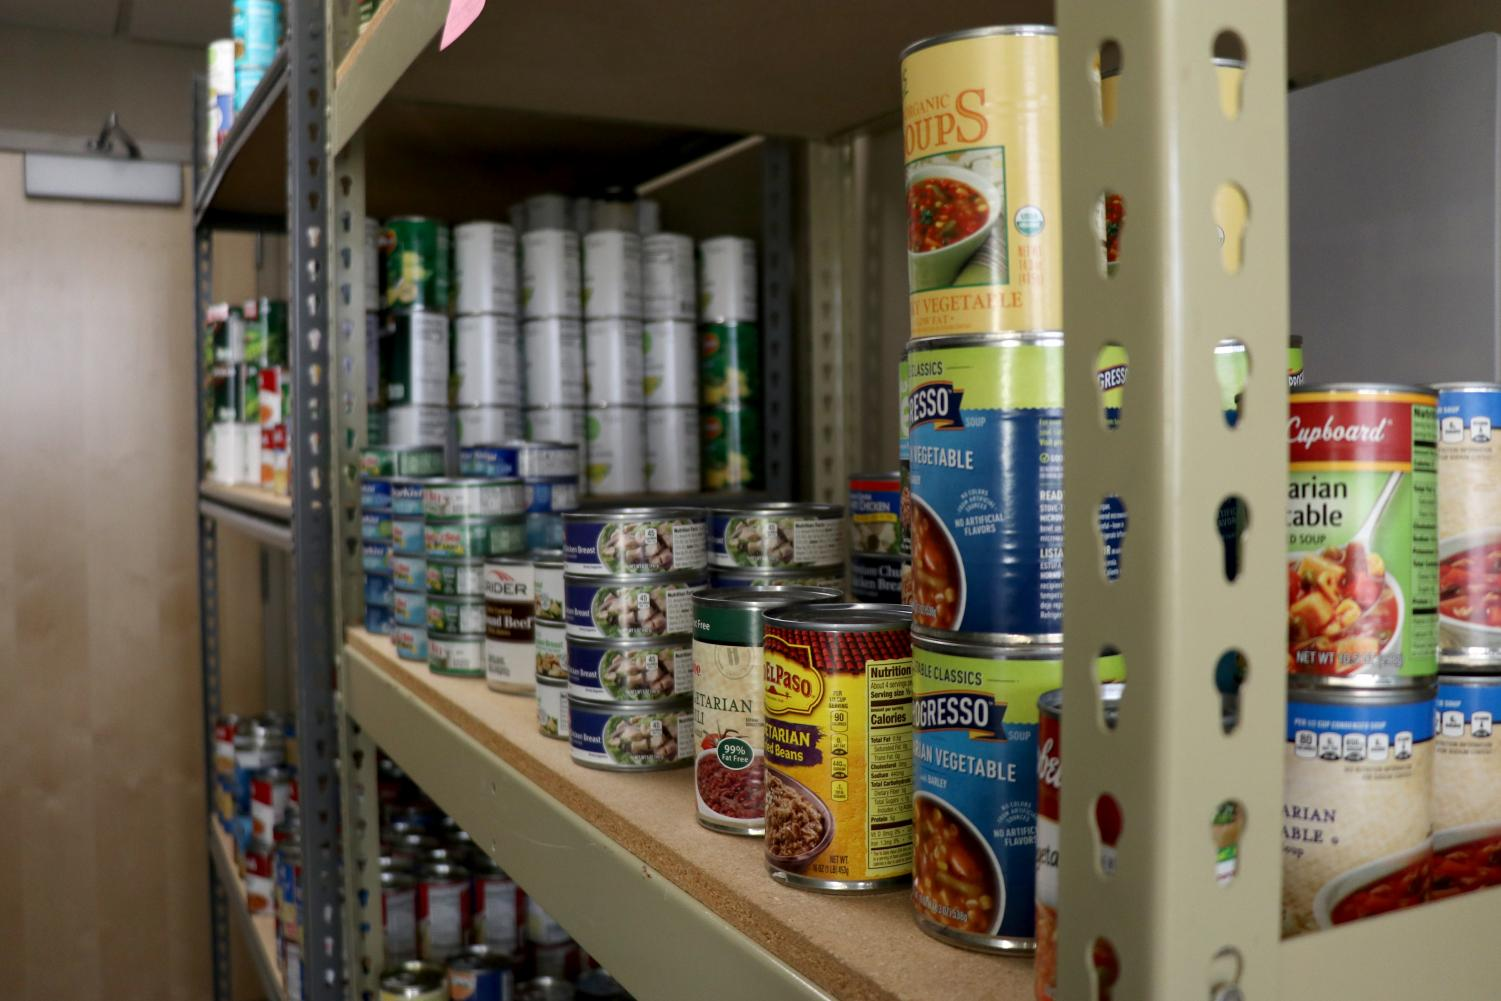 Jack's Cupboard is an on-campus pantry in Ben Reifel for students who struggle to purchase food. It is open 3:30-6:30 p.m. every Wednesday and Thursday.